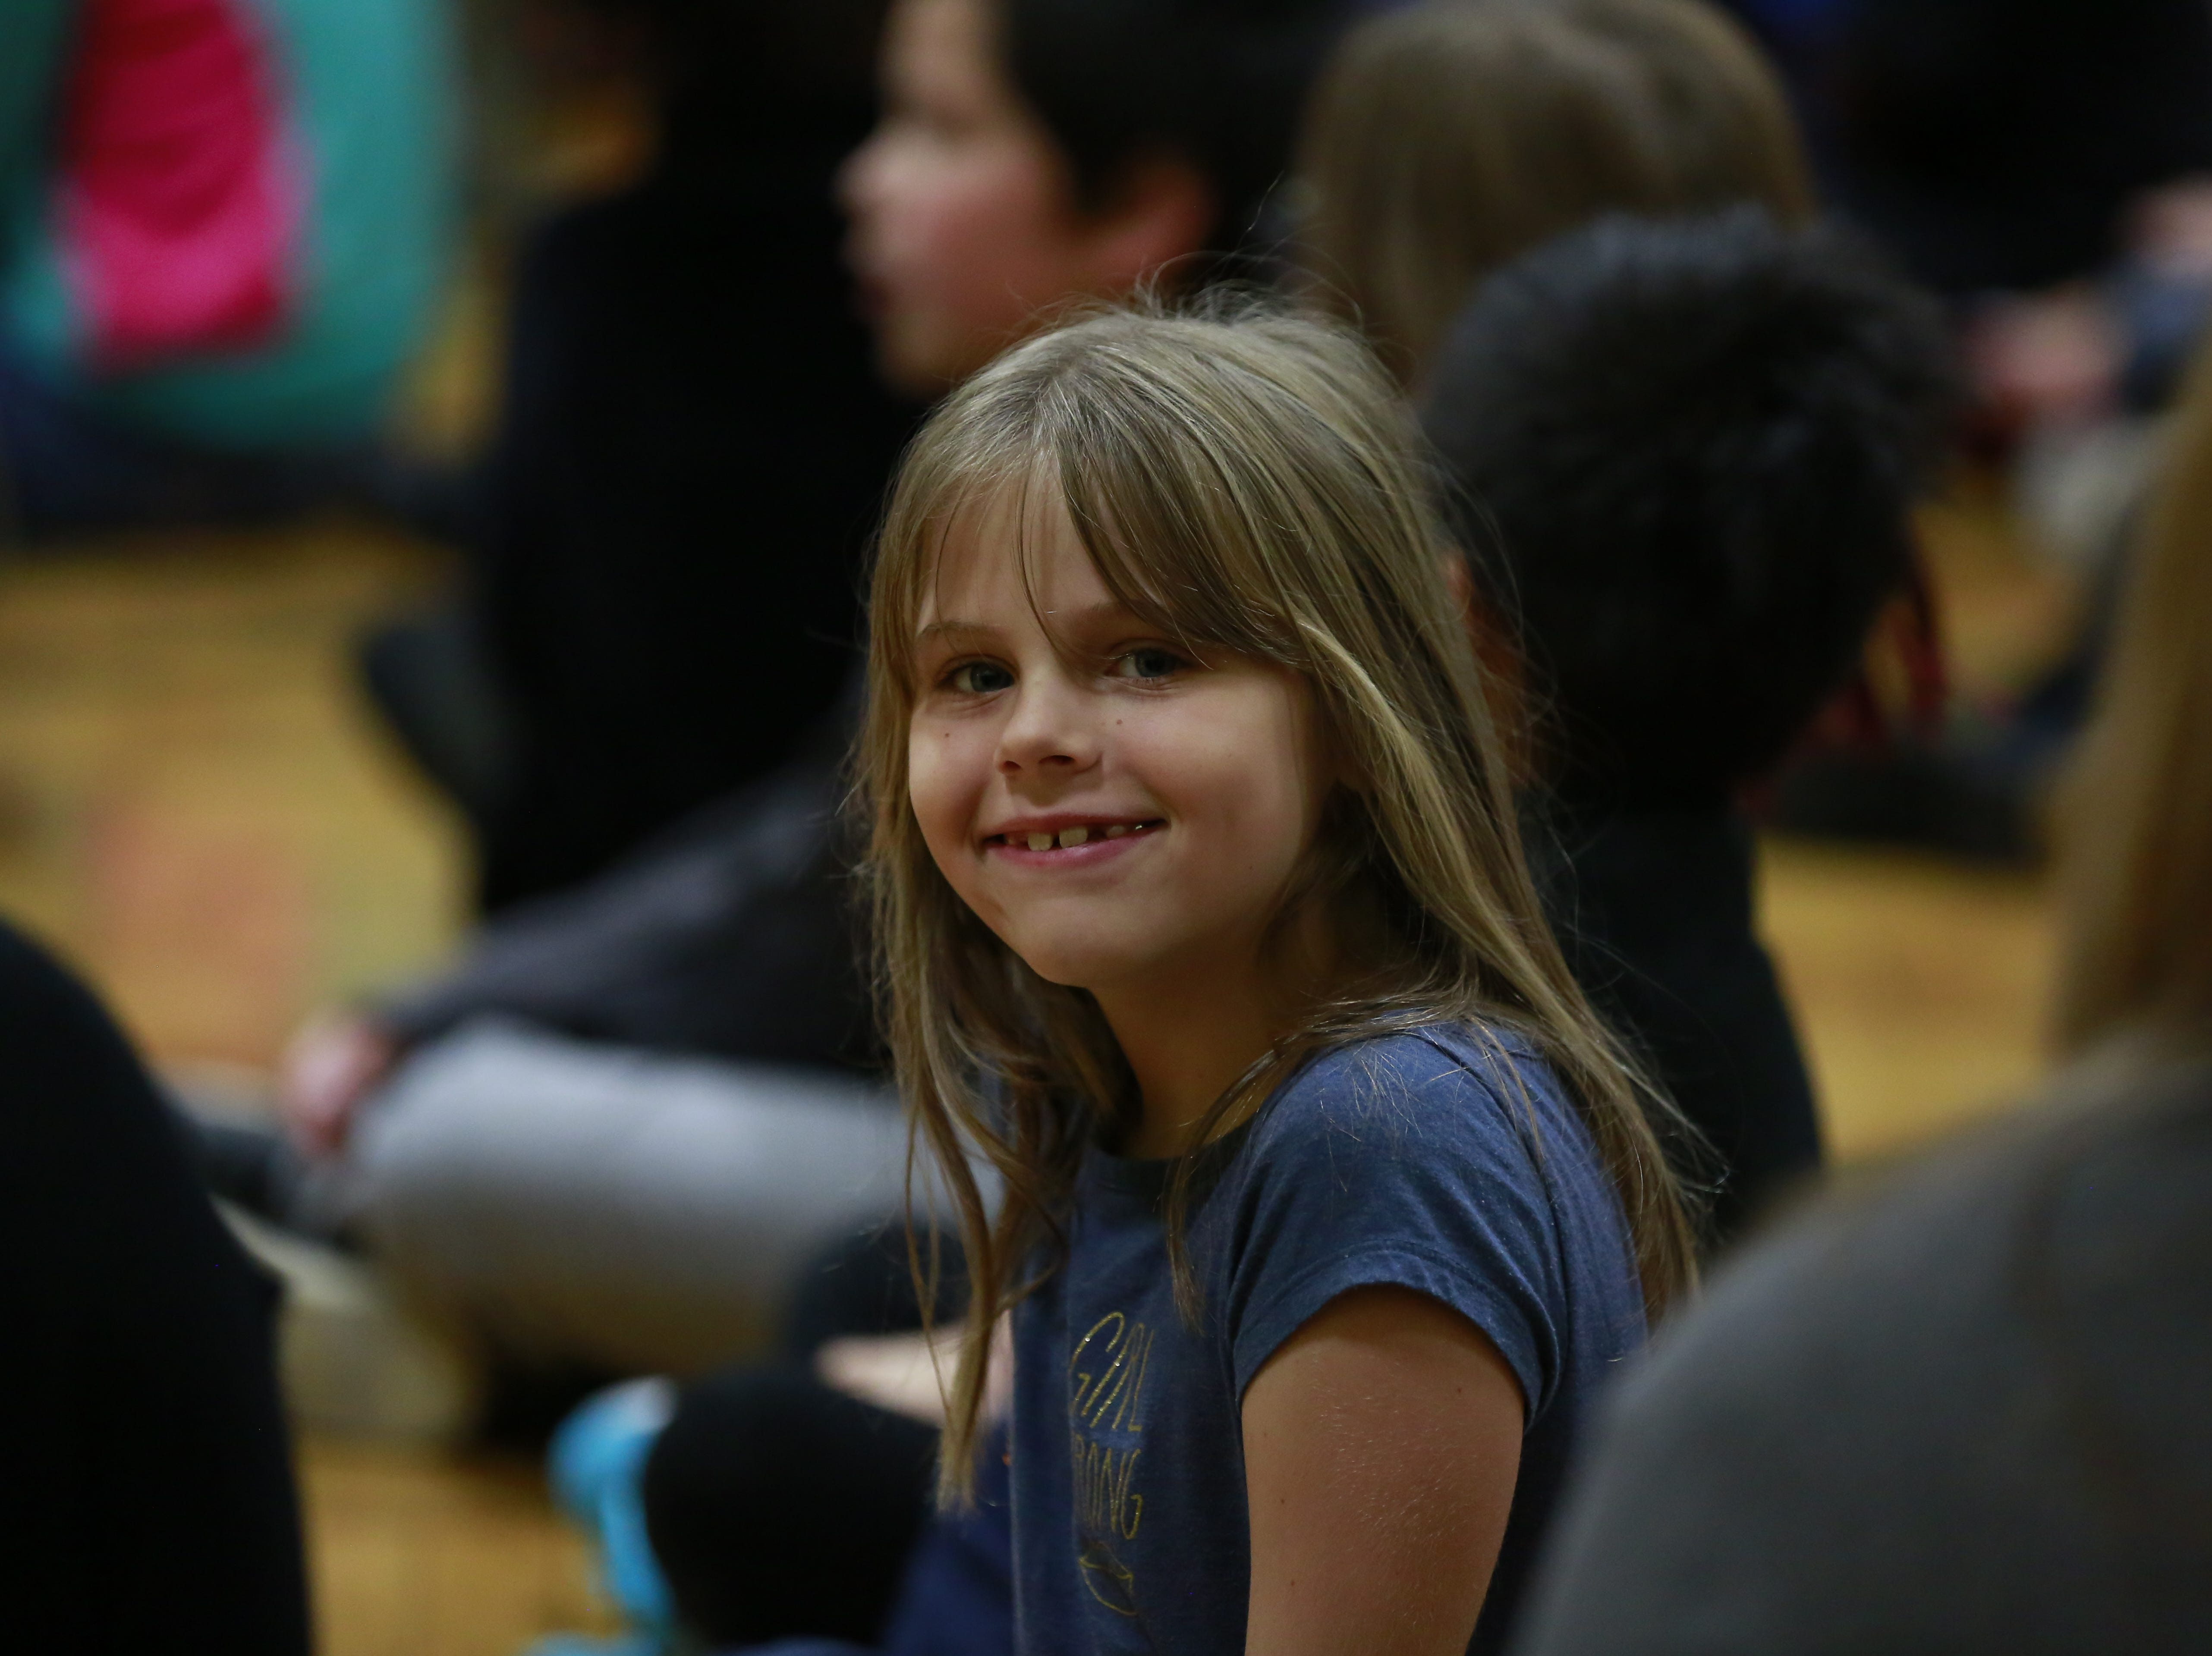 A student smiles at the camera Monday, Oct. 15, 2018, during the Anti-Bullying Relentless Tour to Visit Wisconsin at Weston Elementary School in Weston, Wis. T'xer Zhon Kha/USA TODAY NETWORK-Wisconsin